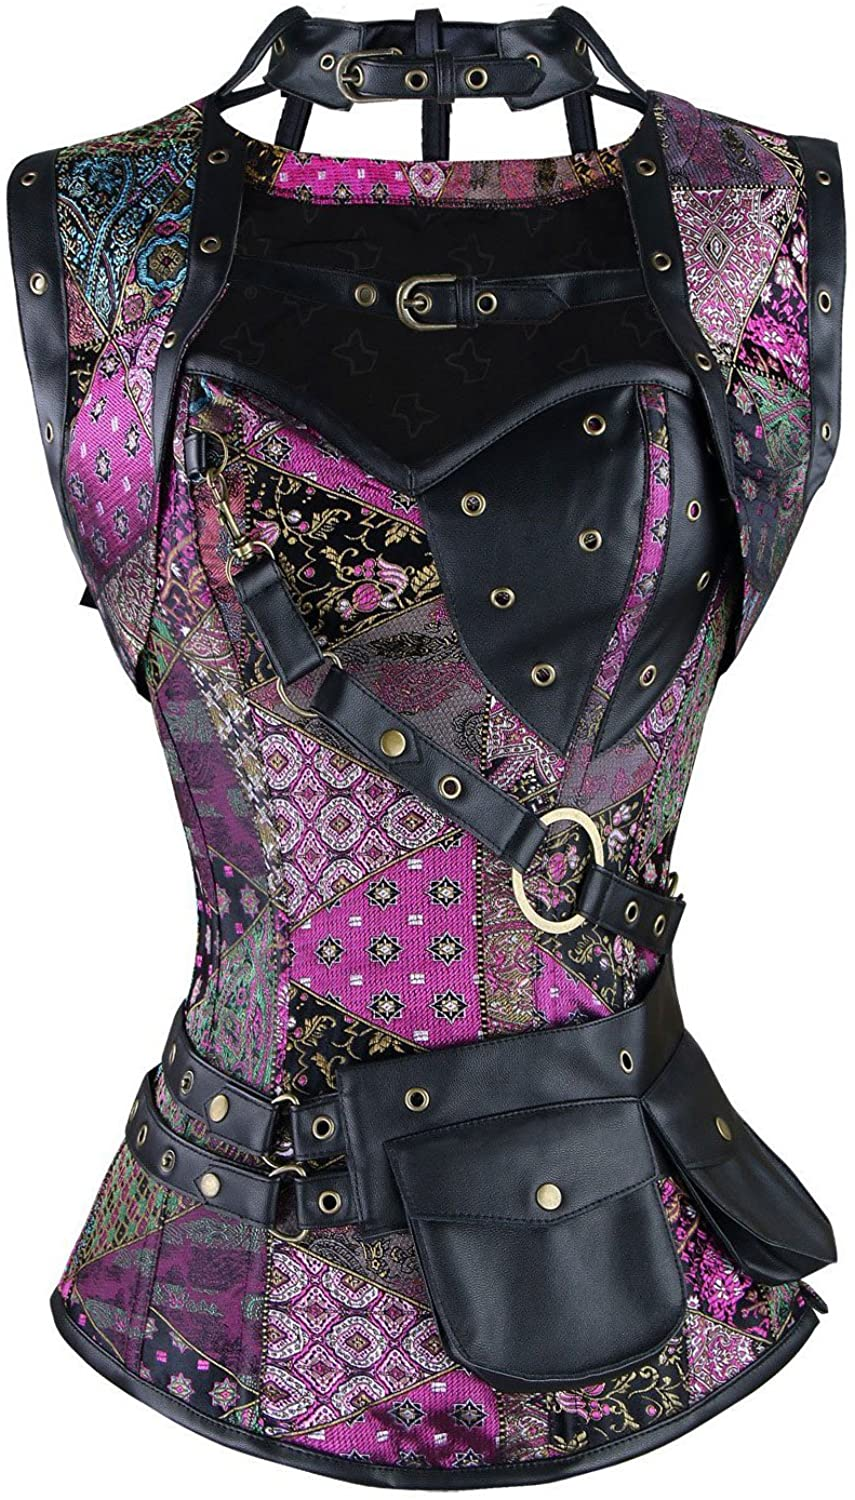 ZAMME Womens Steampunk Brocade Bustiers and Corsets with Pouch Belt